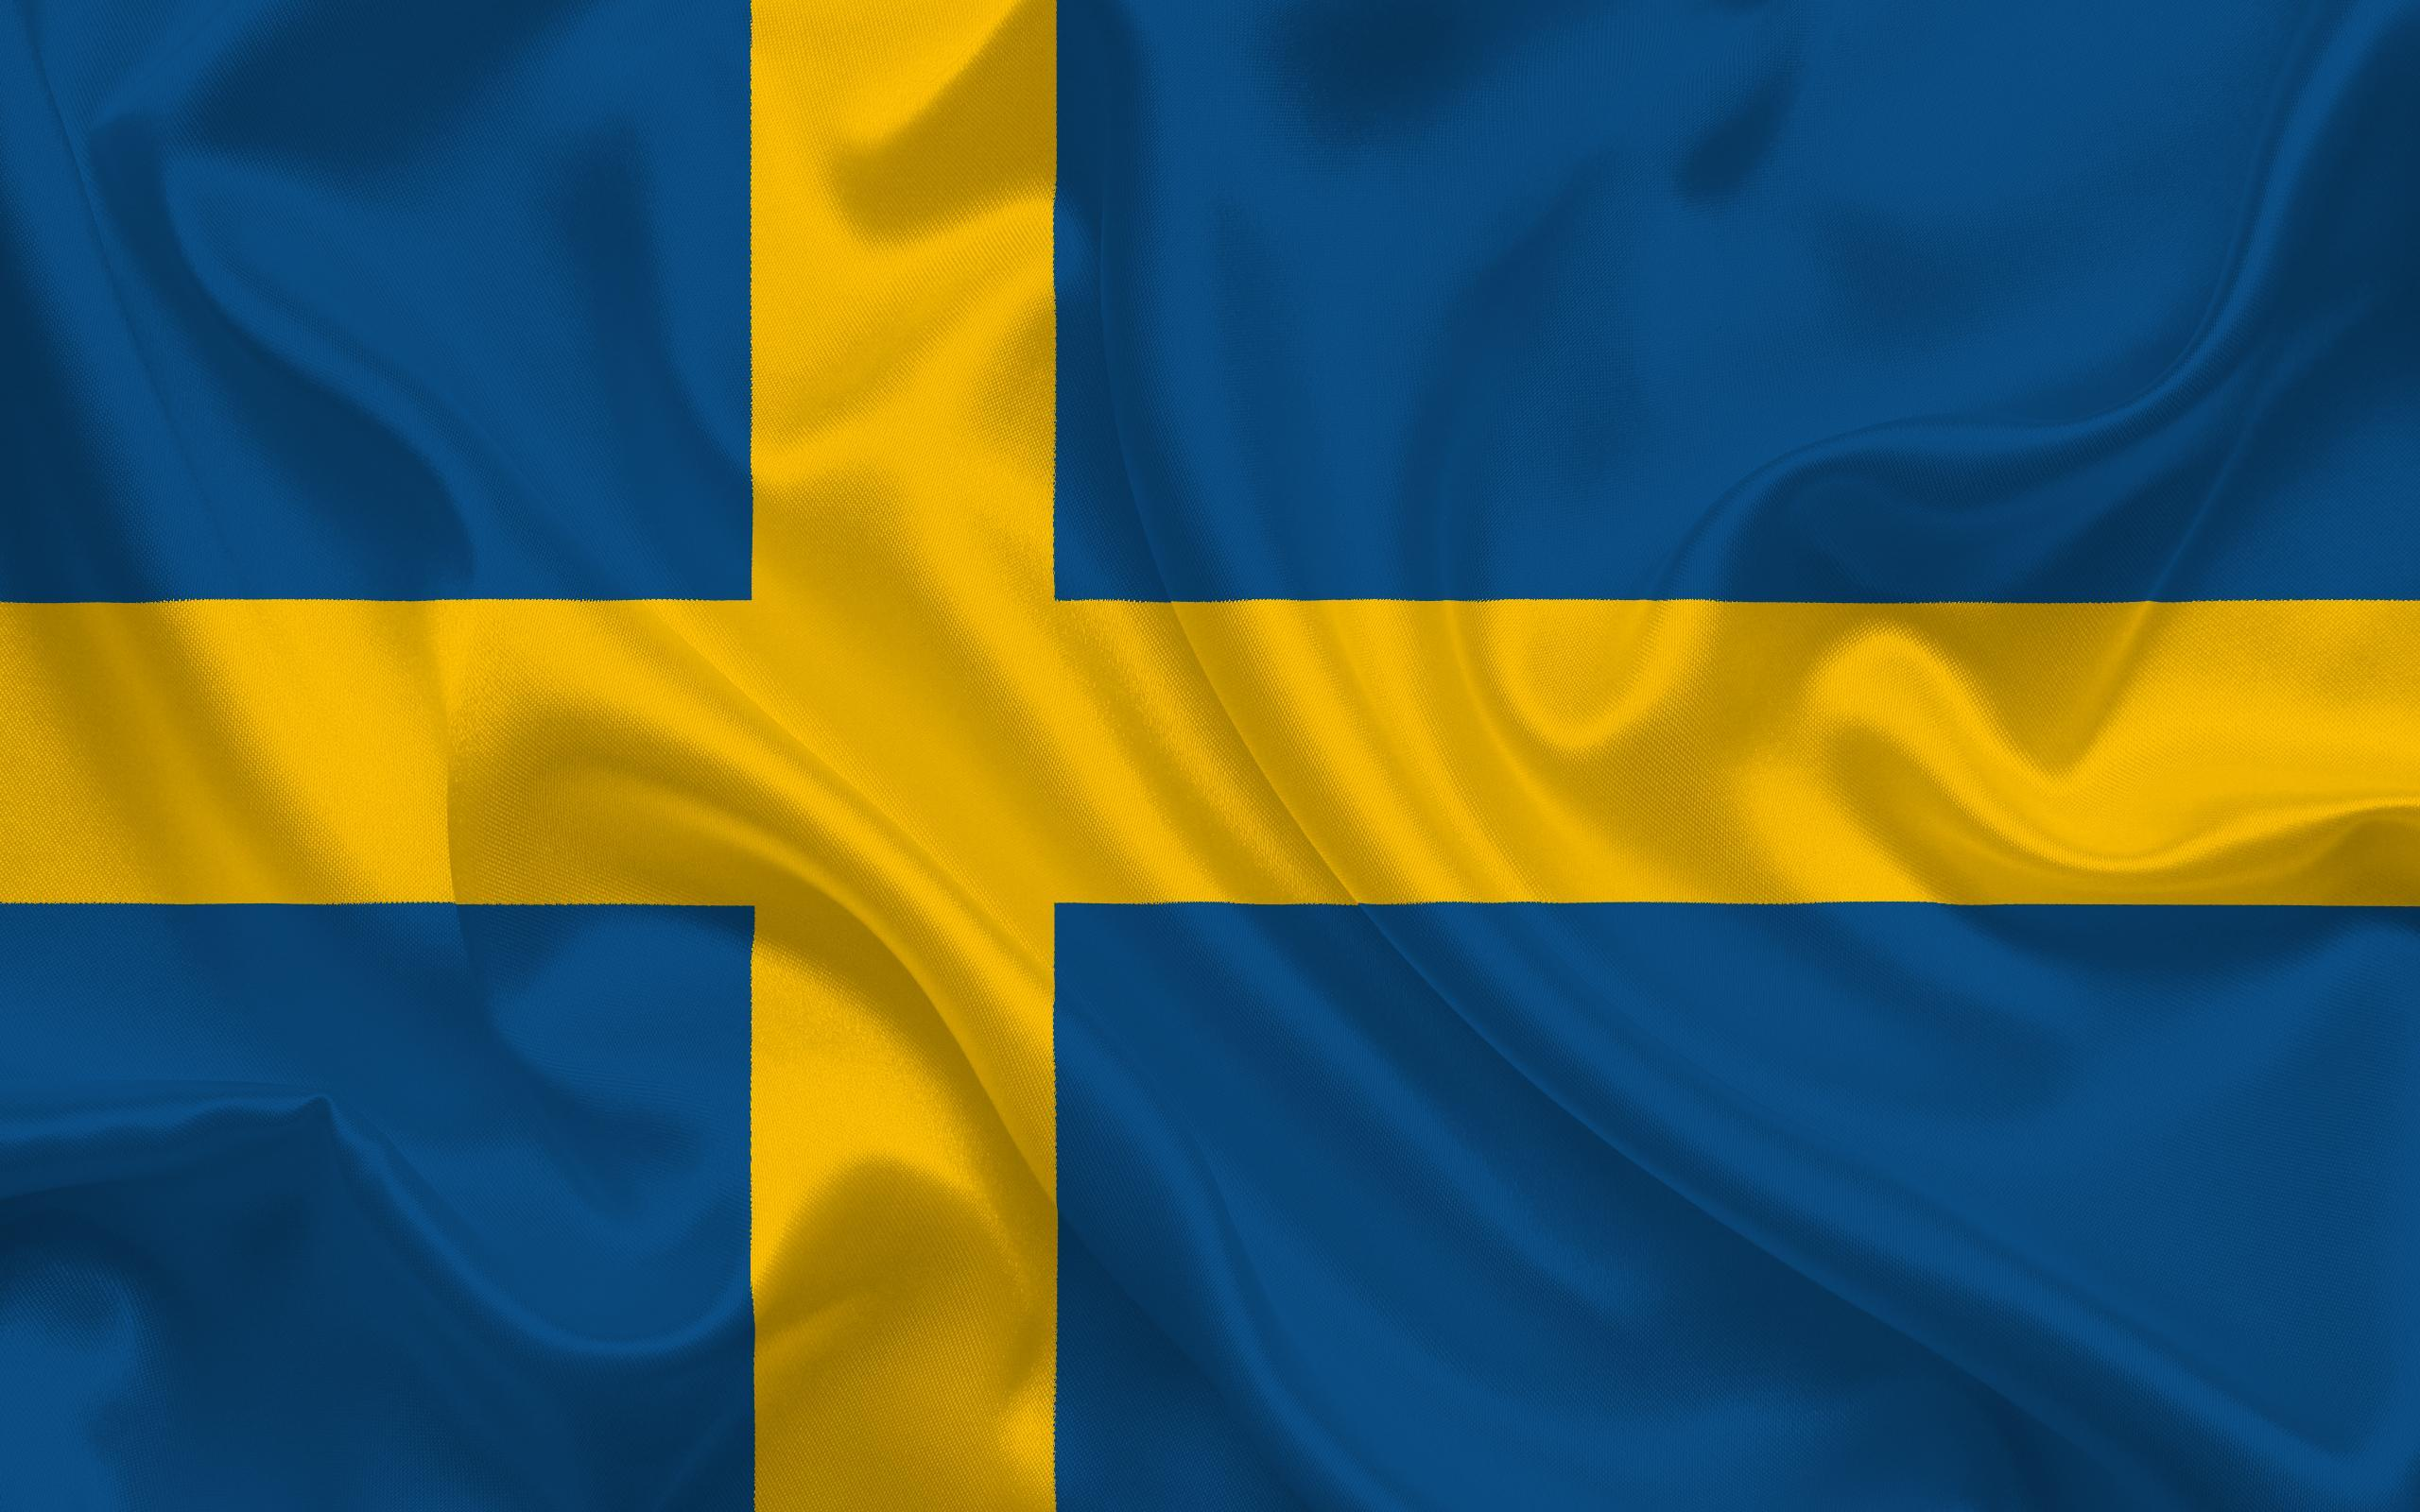 Download wallpapers Swedish flag, Sweden, Europe, flag of Sweden for